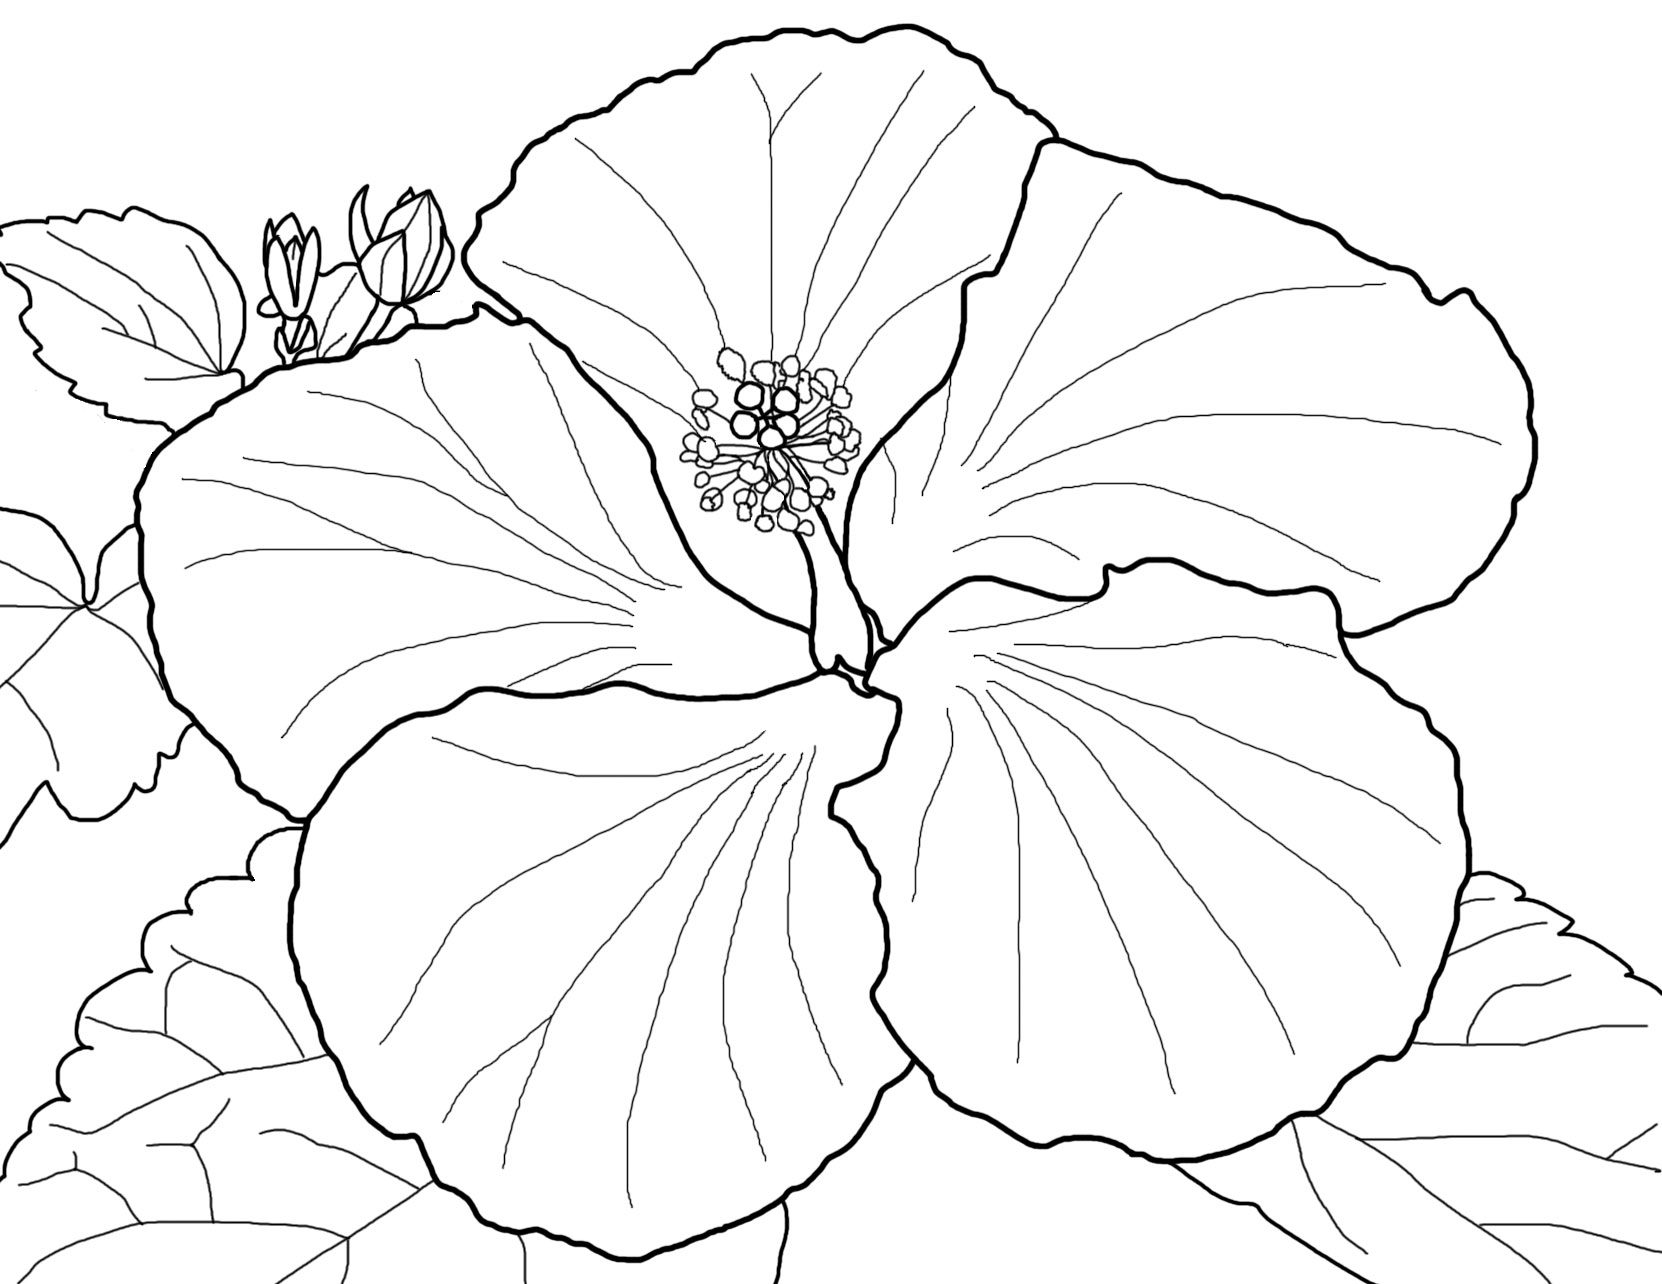 hawaiian flower coloring coloring pages hawaiian flowers collection free coloring flower hawaiian coloring